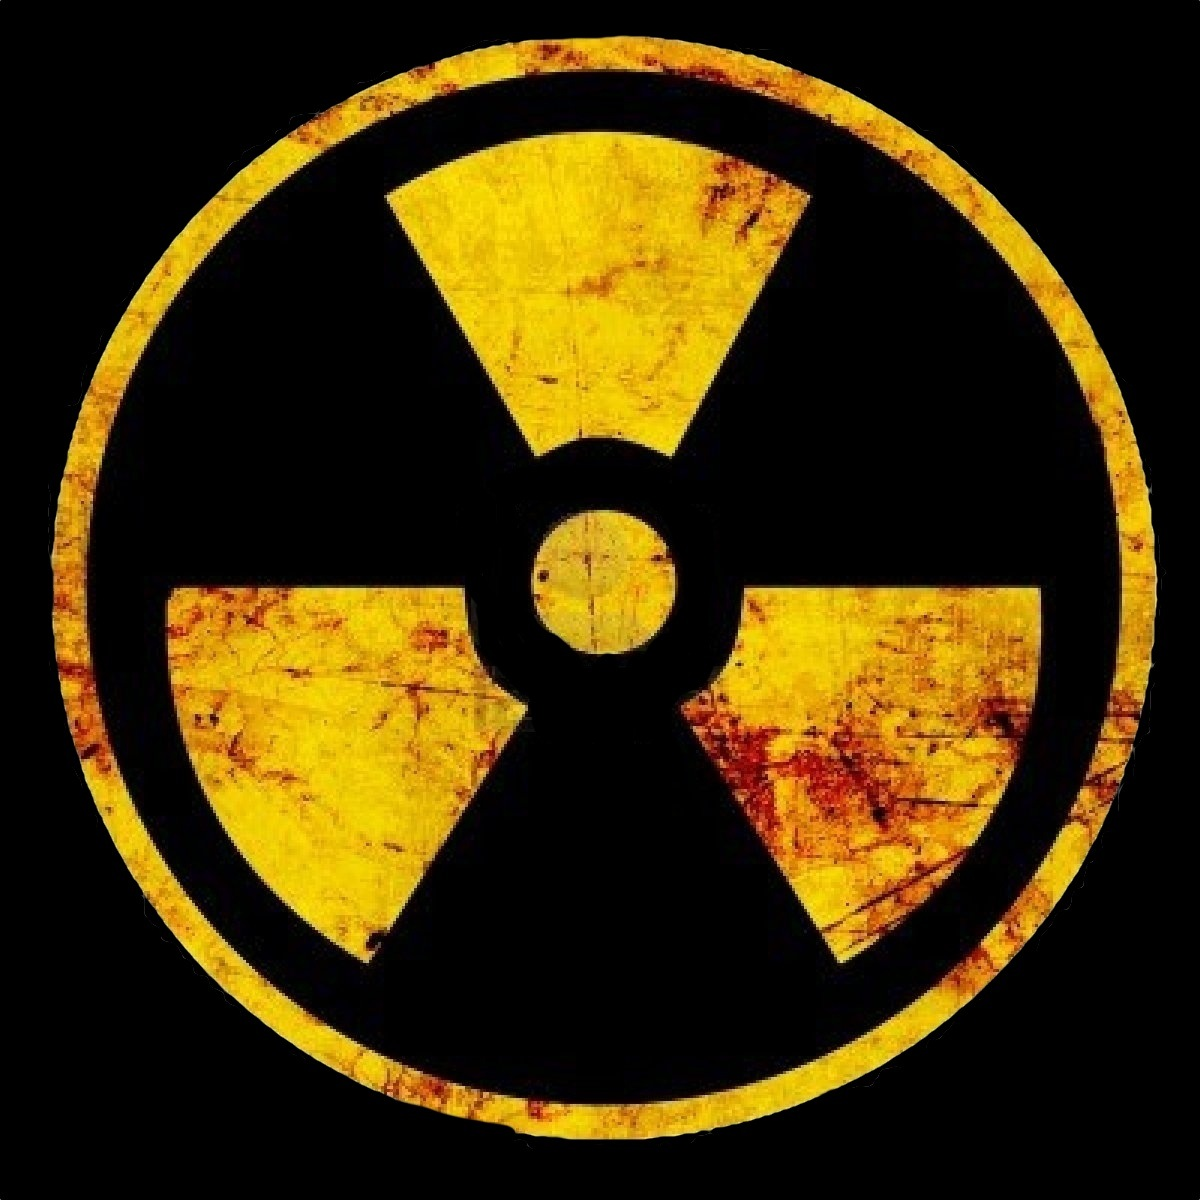 Image 15612731 Nuclear Sign Representing The Danger Of Radiation